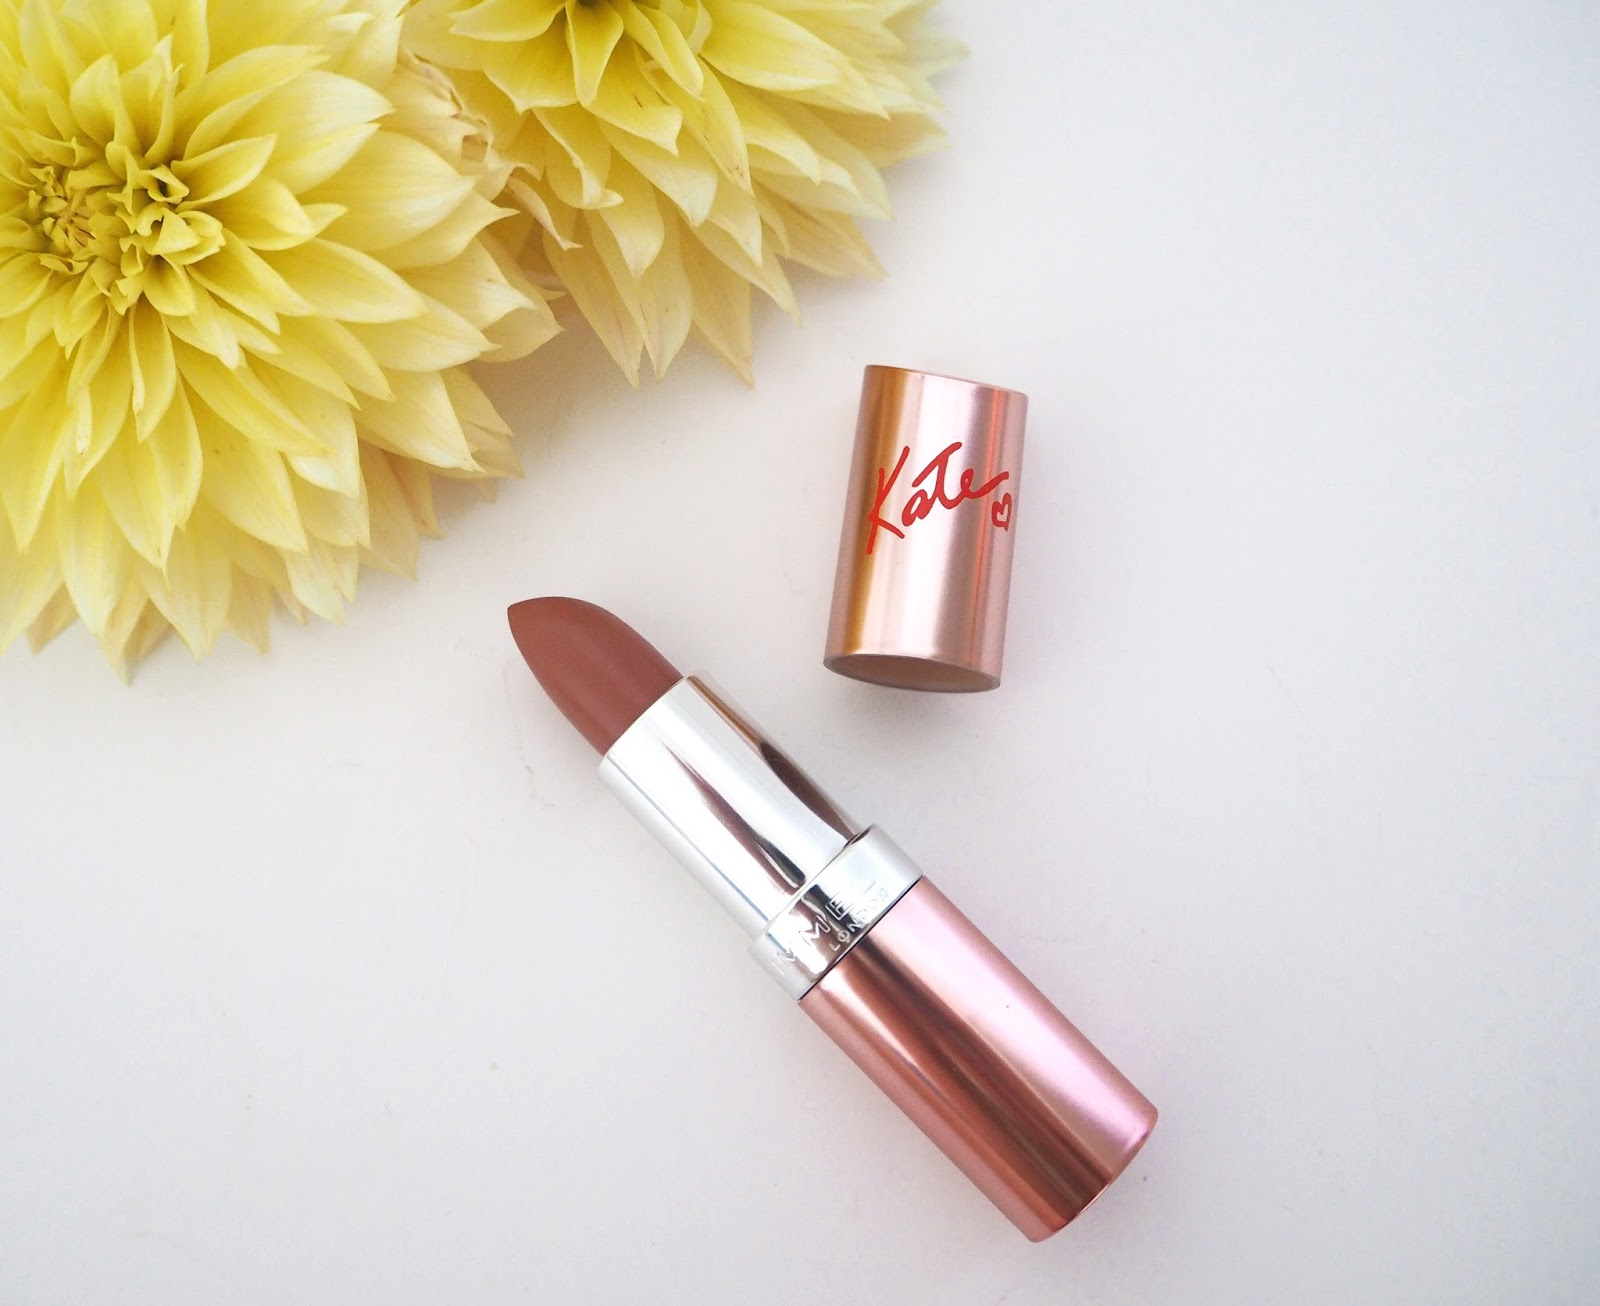 Rimmel Kate Lipstick in My Nude, Nude Lipstick, Lipstick Swatches, Loves List: August, Katie Kirk Loves